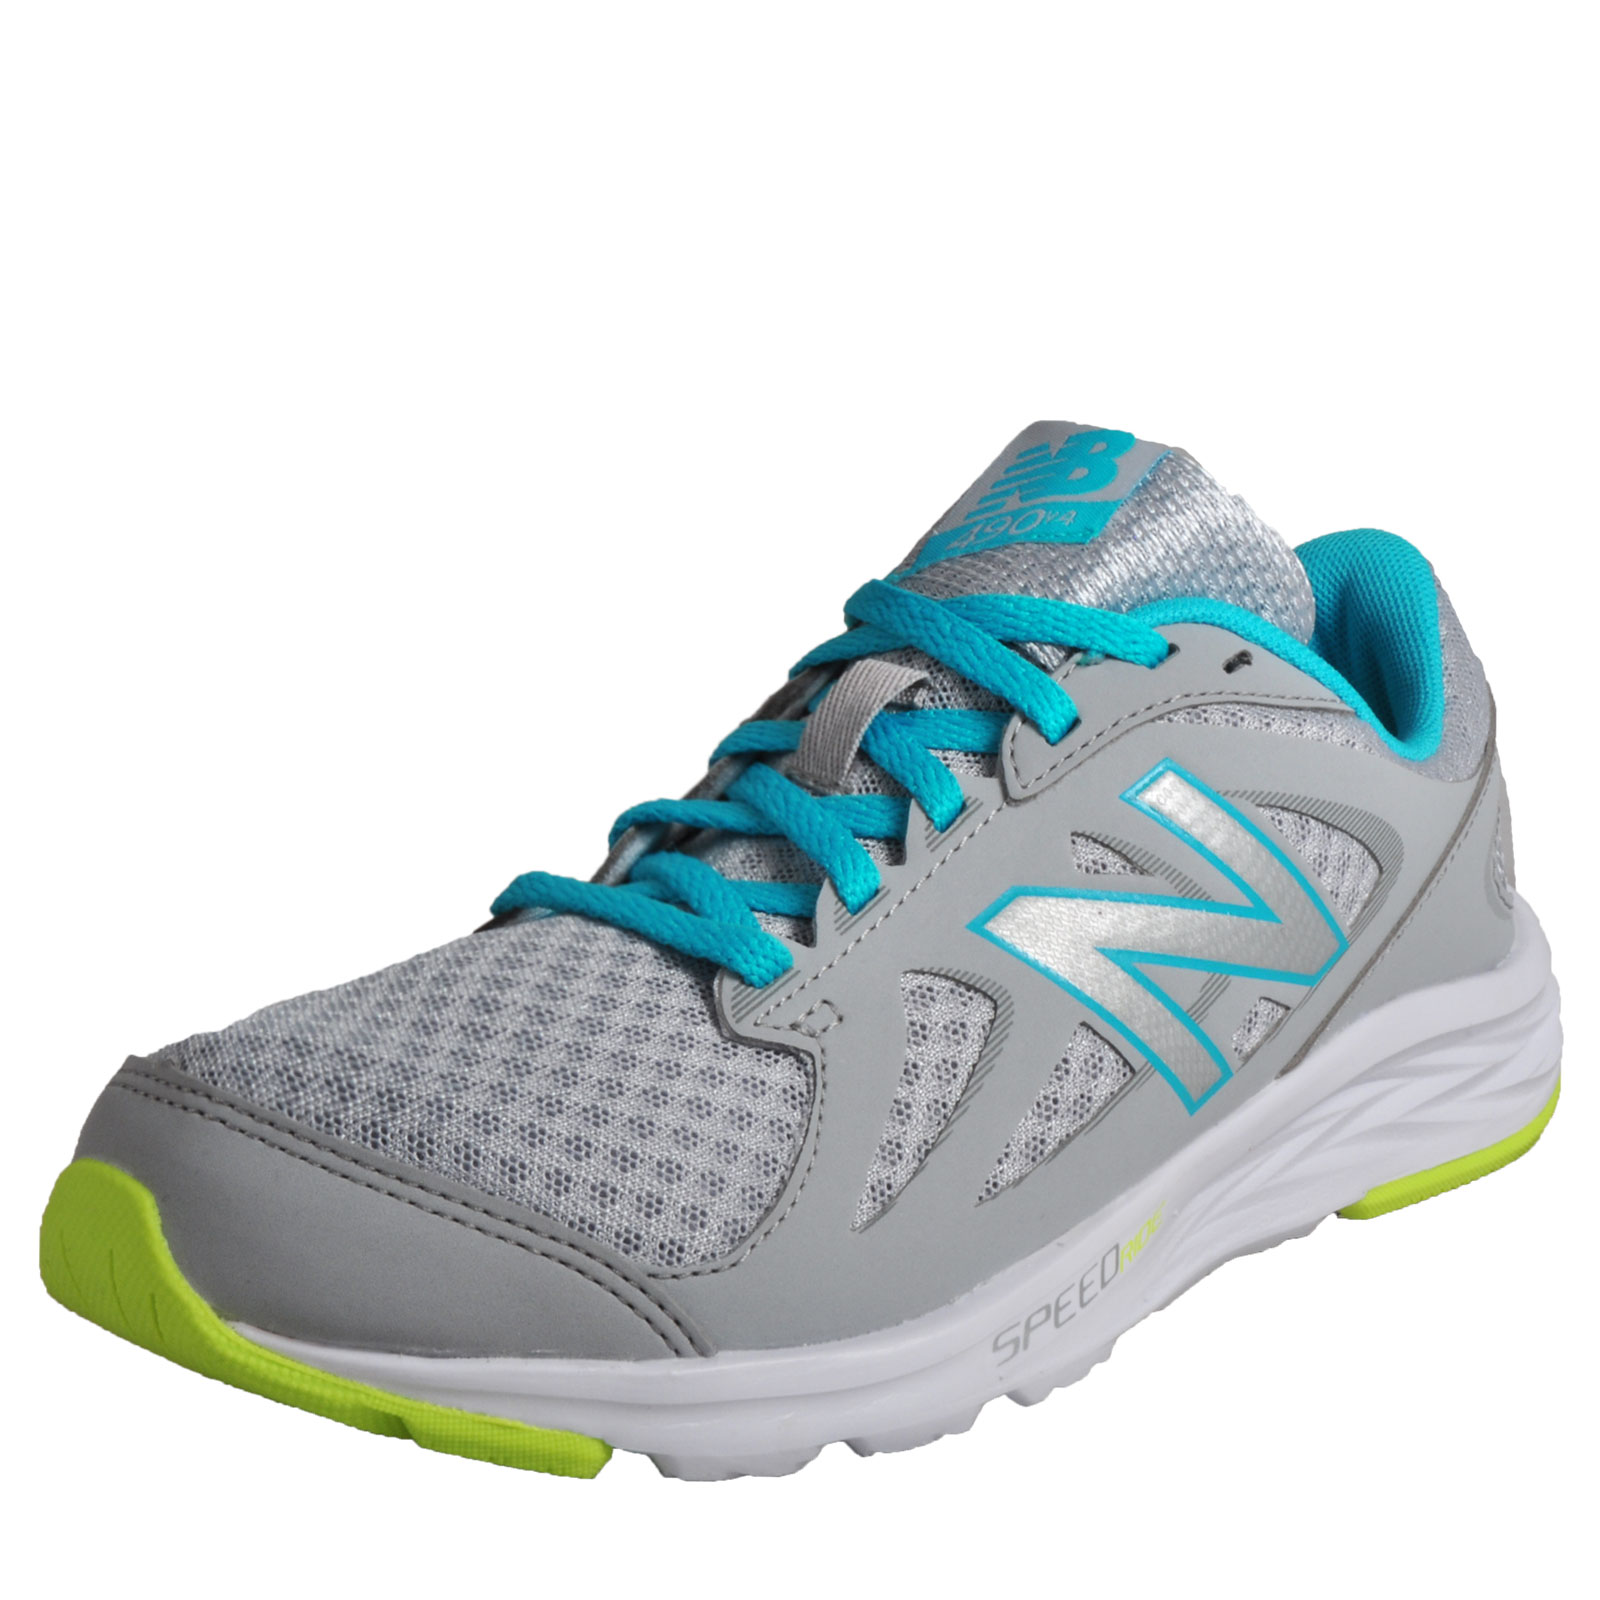 New Balance 490 V4 Womens Running Shoes Fitness Gym Workout Trainers Grey